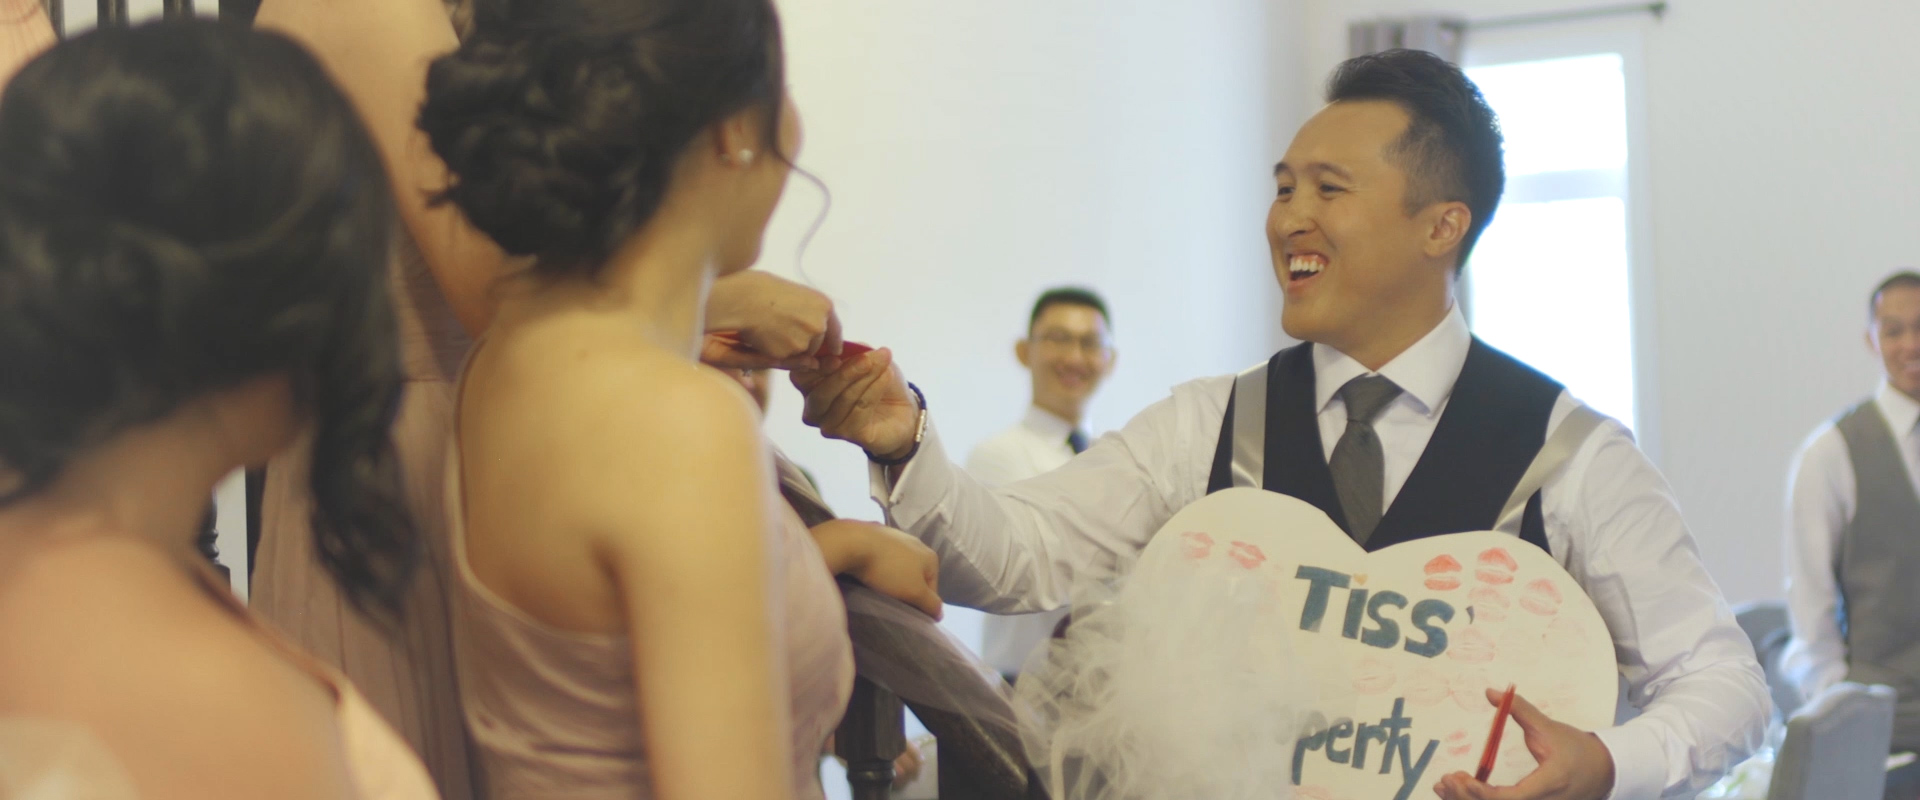 An image of a groom participating in traditional games on his wedding day; taken from a Toronto Wedding Video